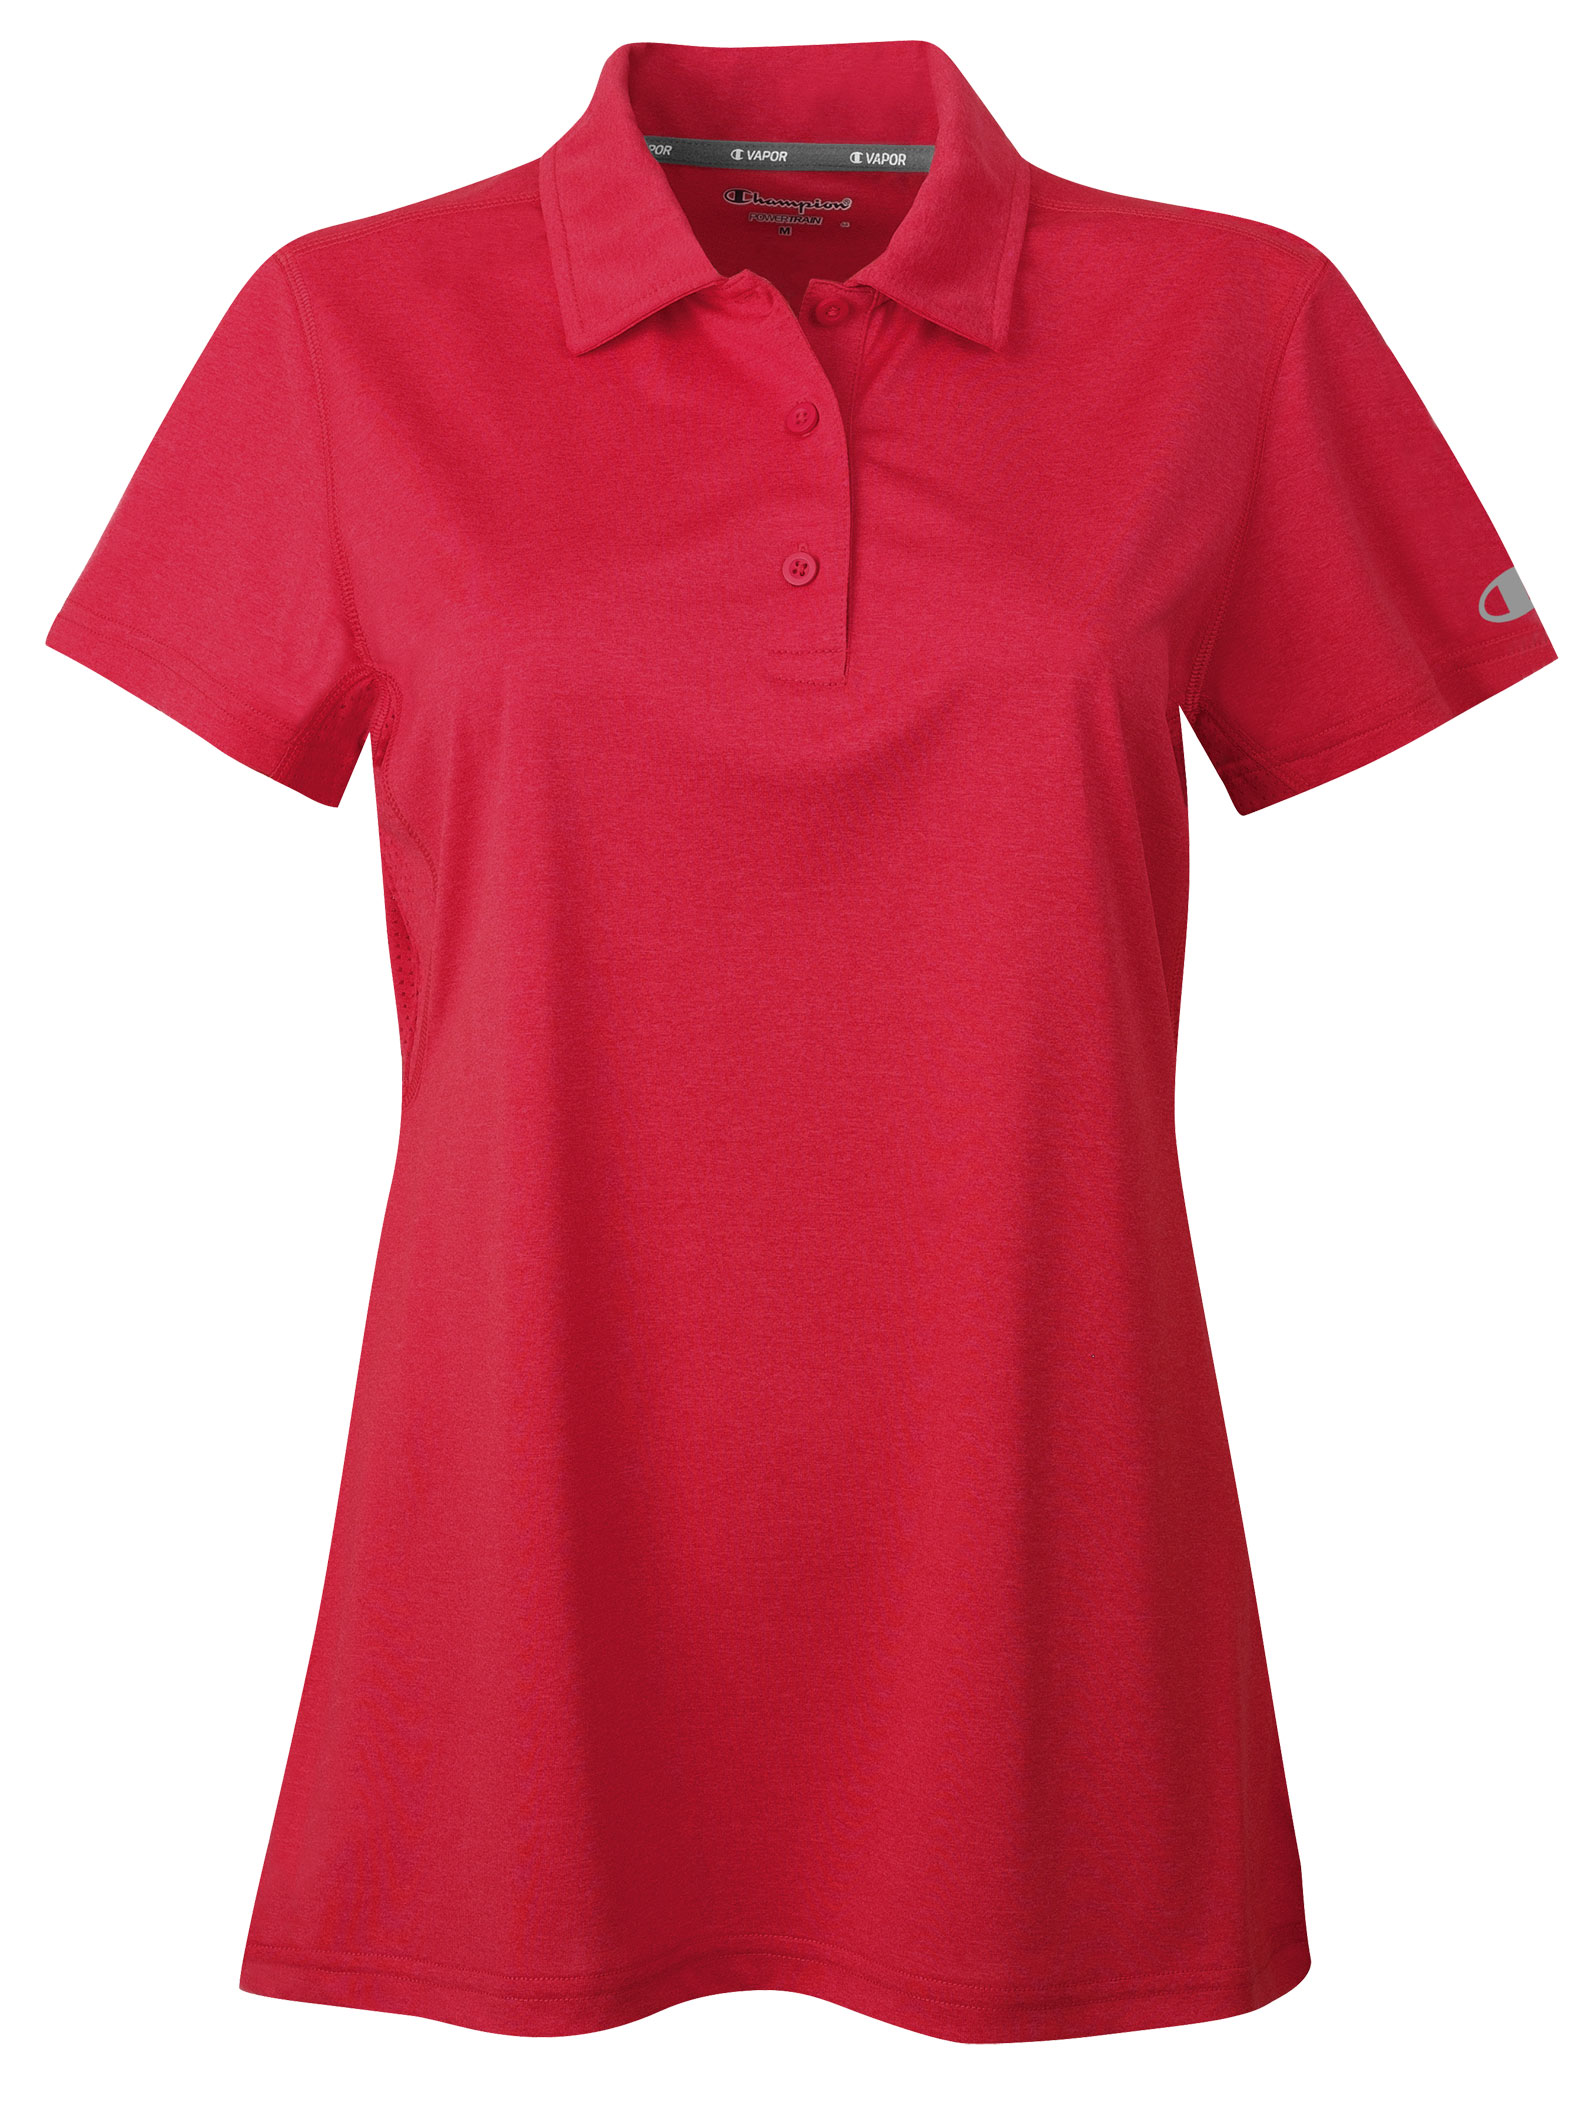 Womens Champion Vapor Polo